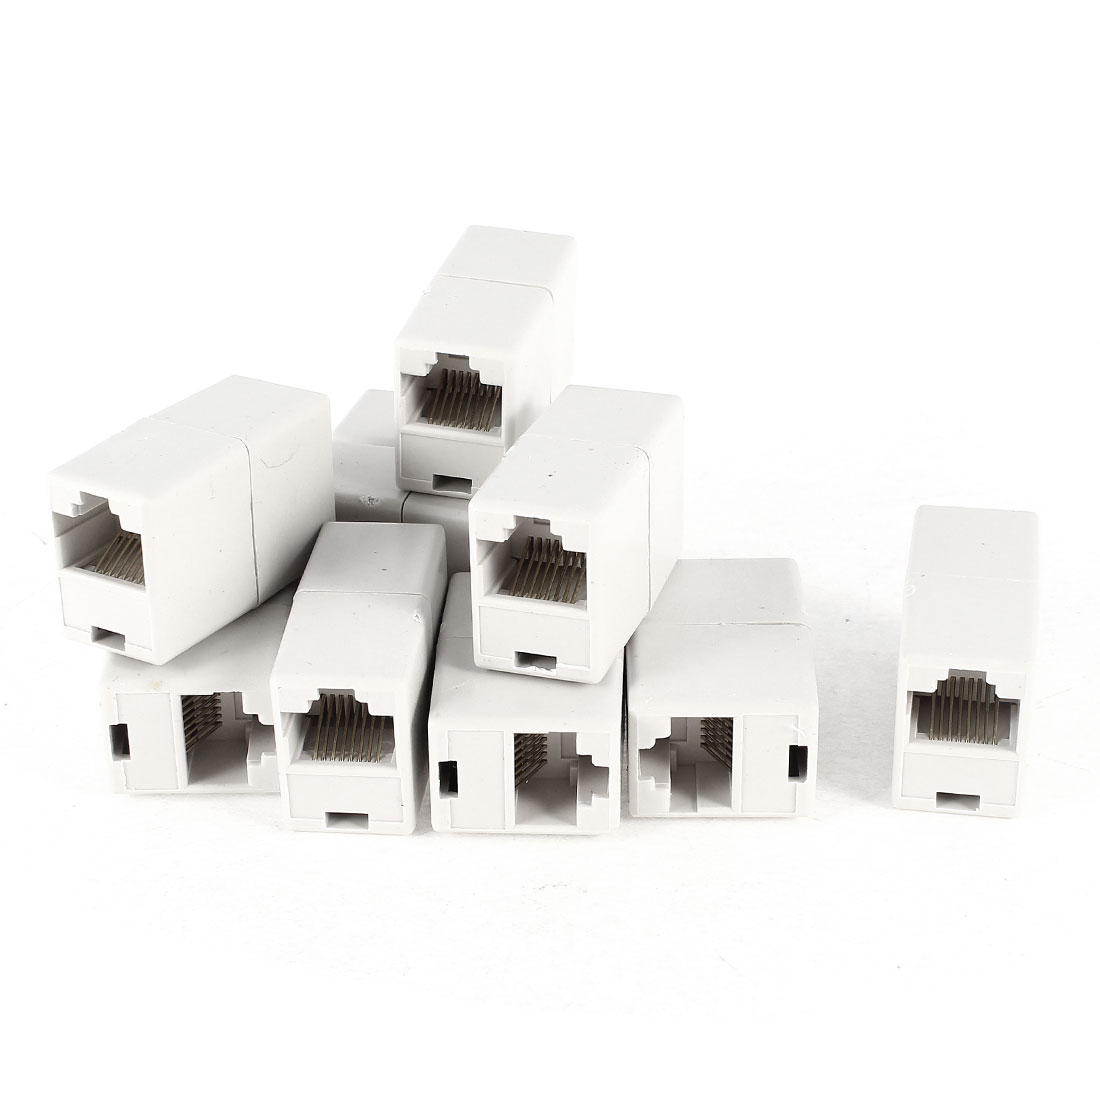 RJ45 F/F LAN Network Inline Splitter Extender Coupler Adapter Off White 10 Pcs